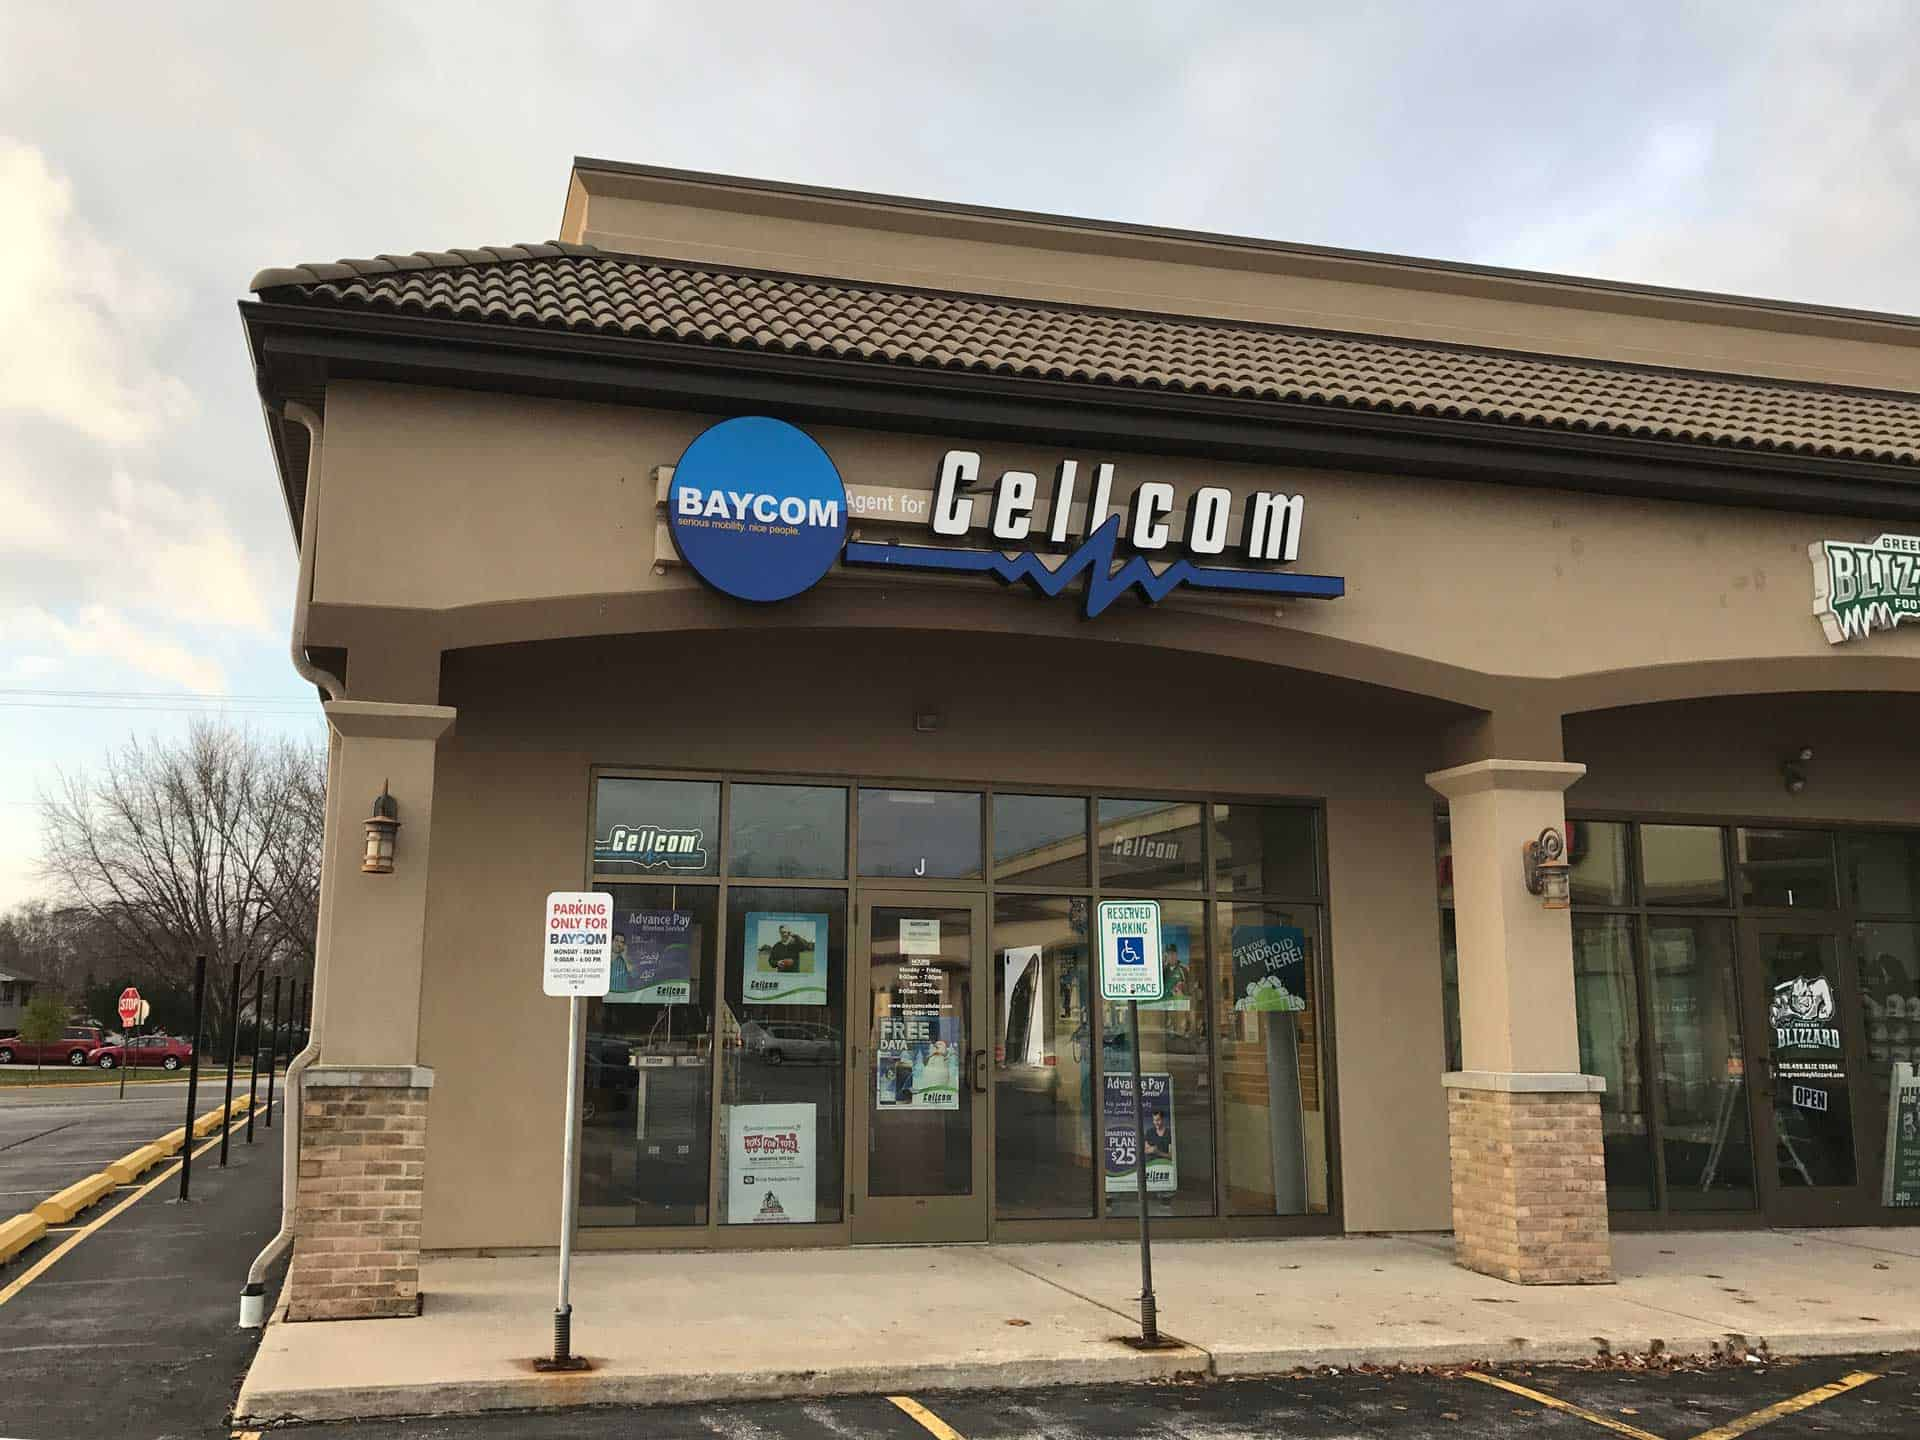 BAYCOM Cellular Locations Are Your Cellcom Stores in Green Bay